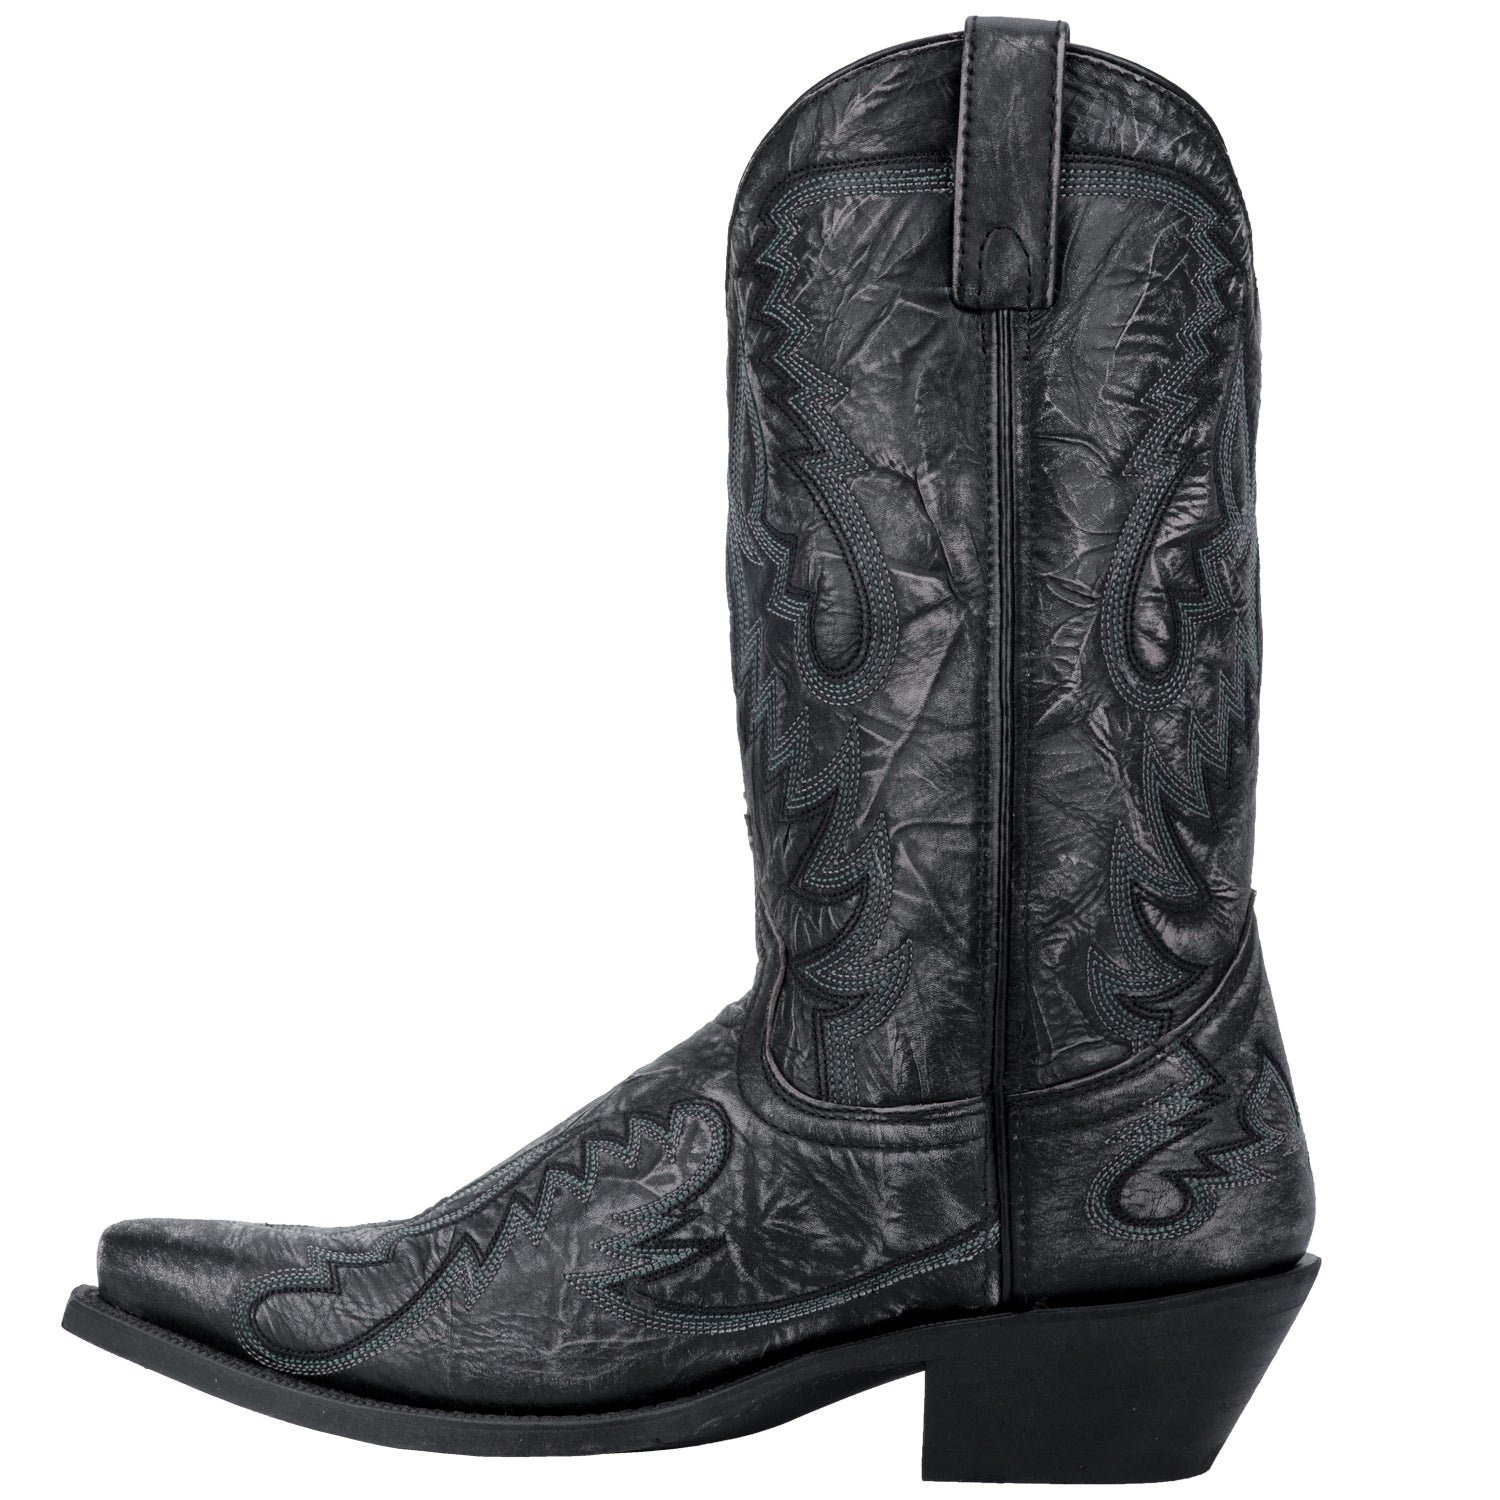 GARRETT LEATHER BOOT 4253533962282